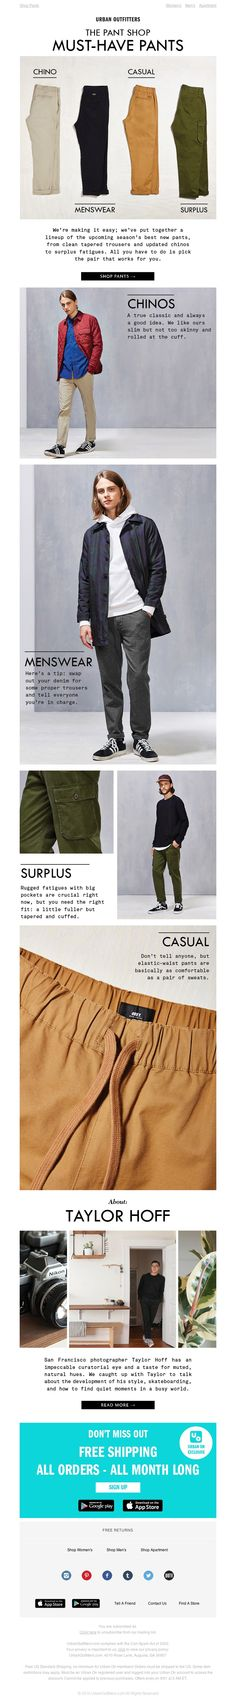 Urban Outfitters - The Pant Shop: Must-Have Pants